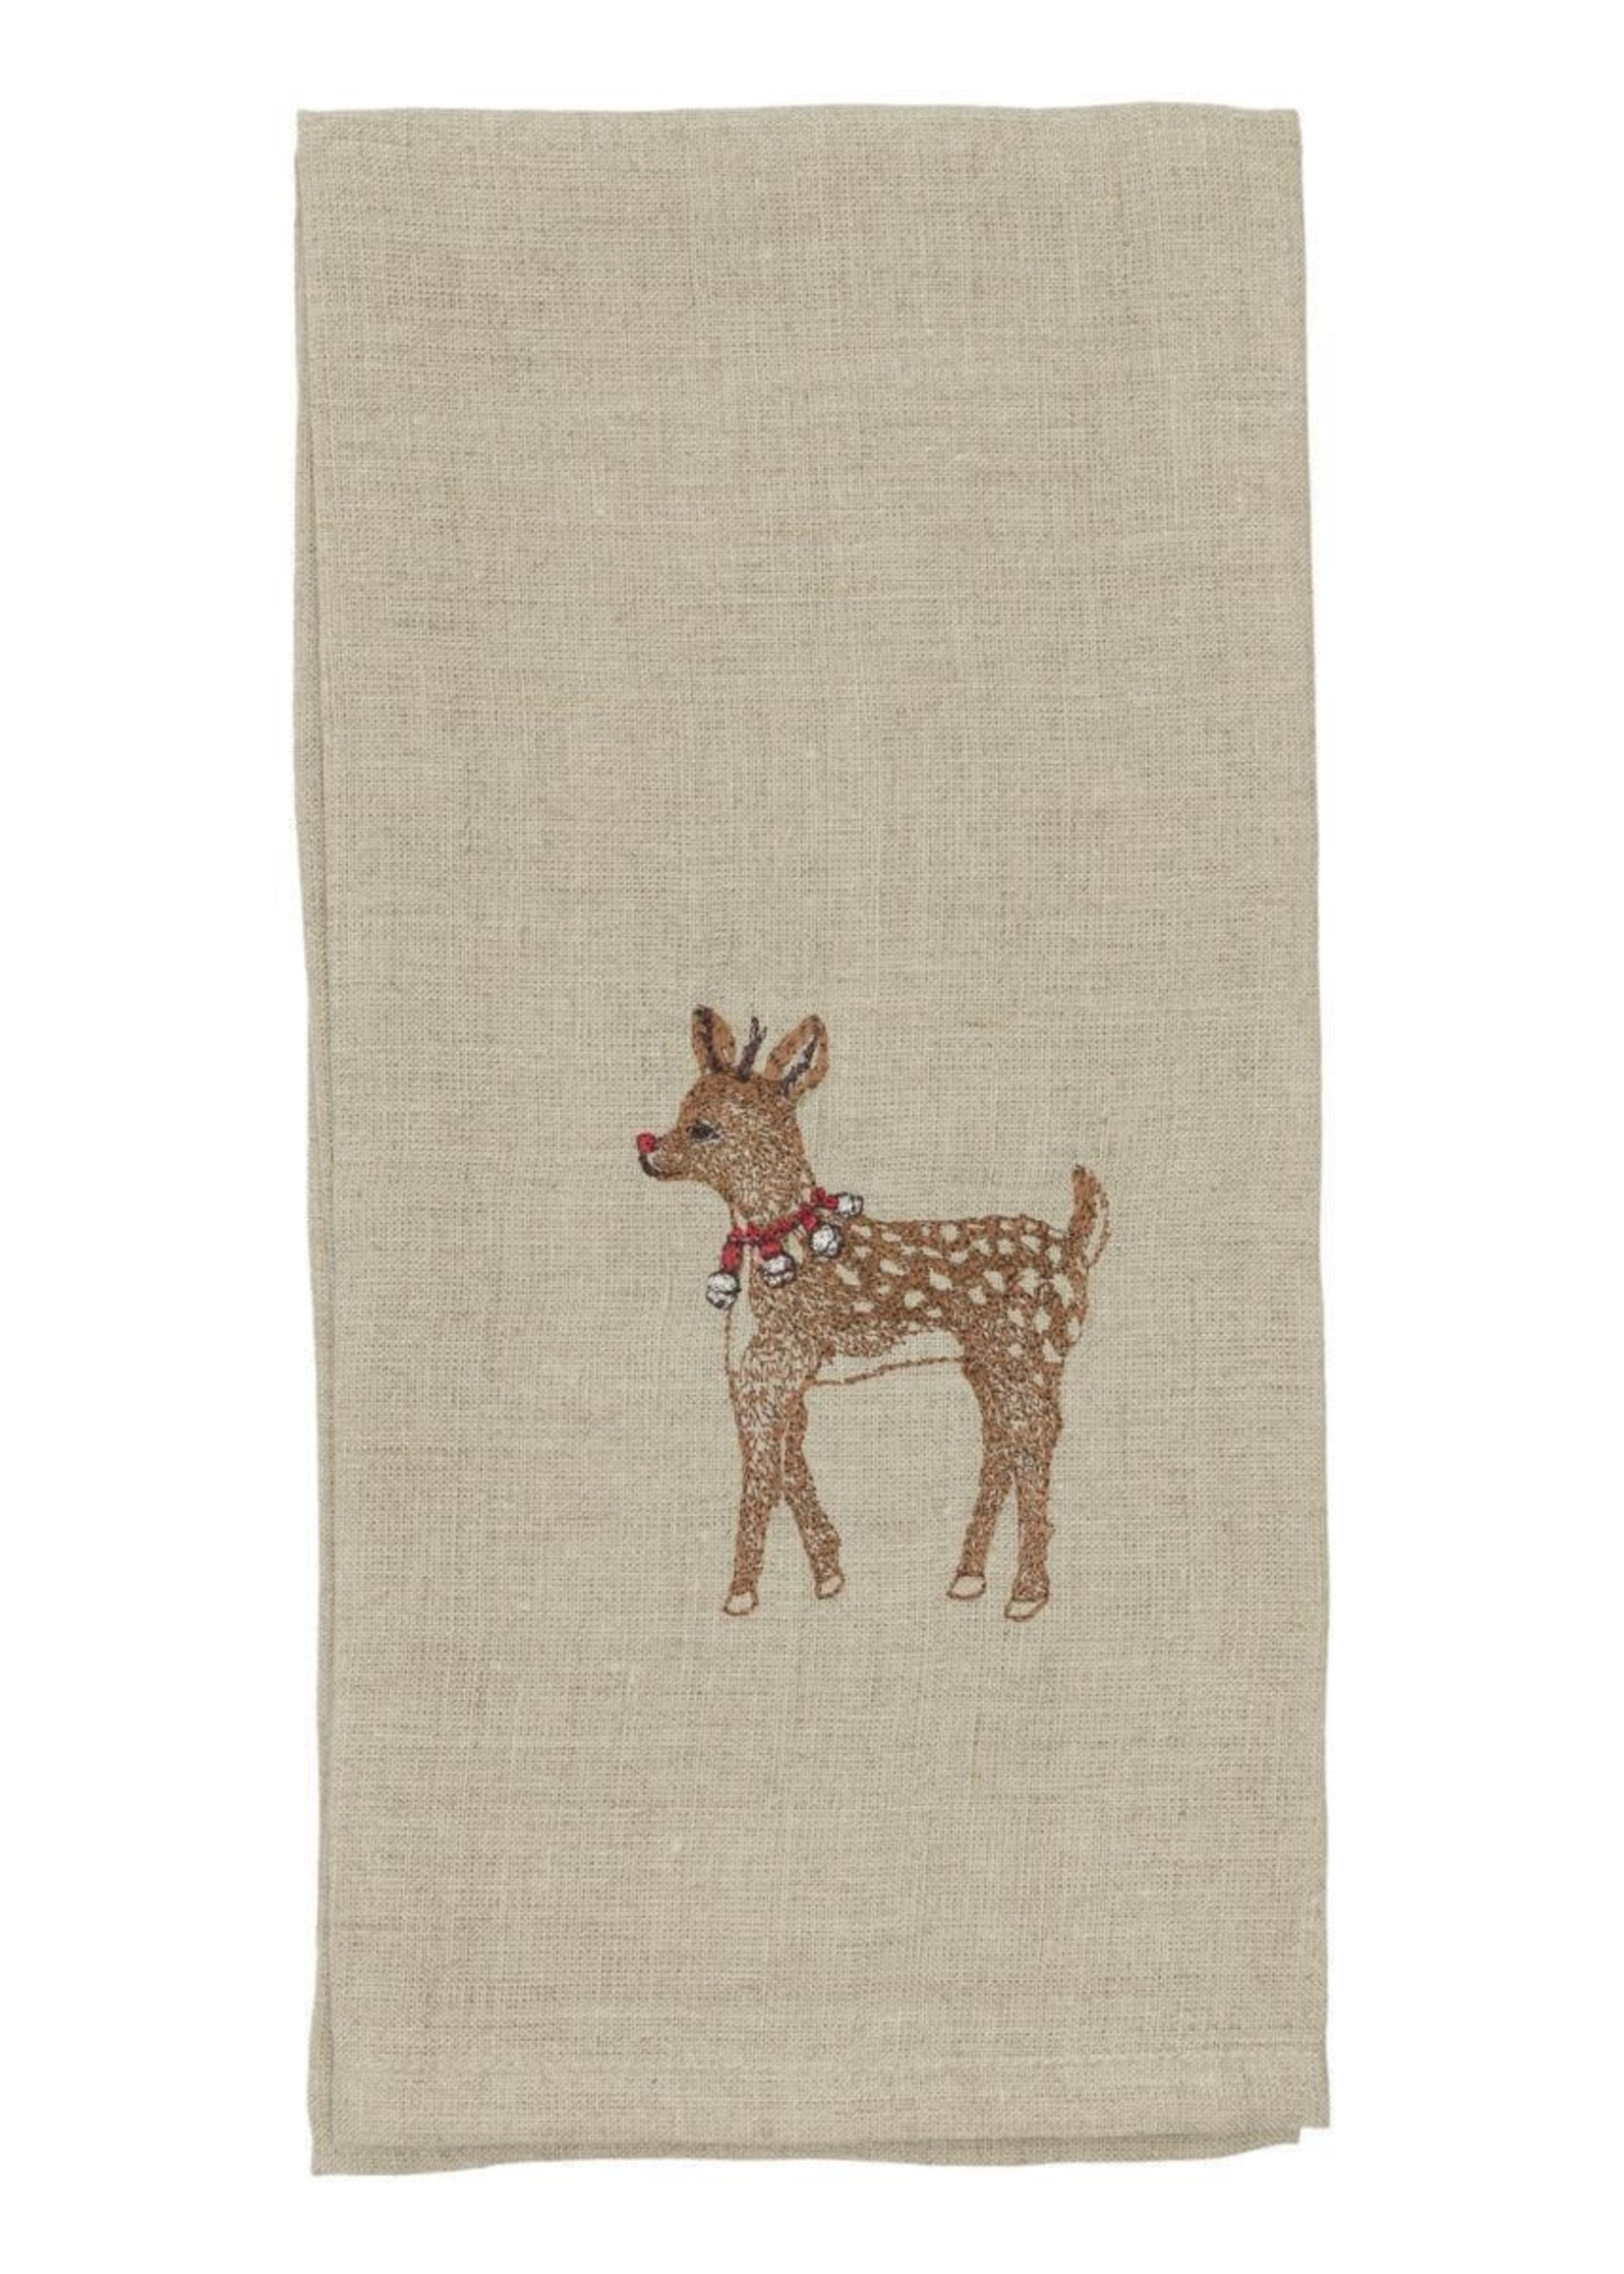 Coral and Tusk Tea Towel - Rudolph